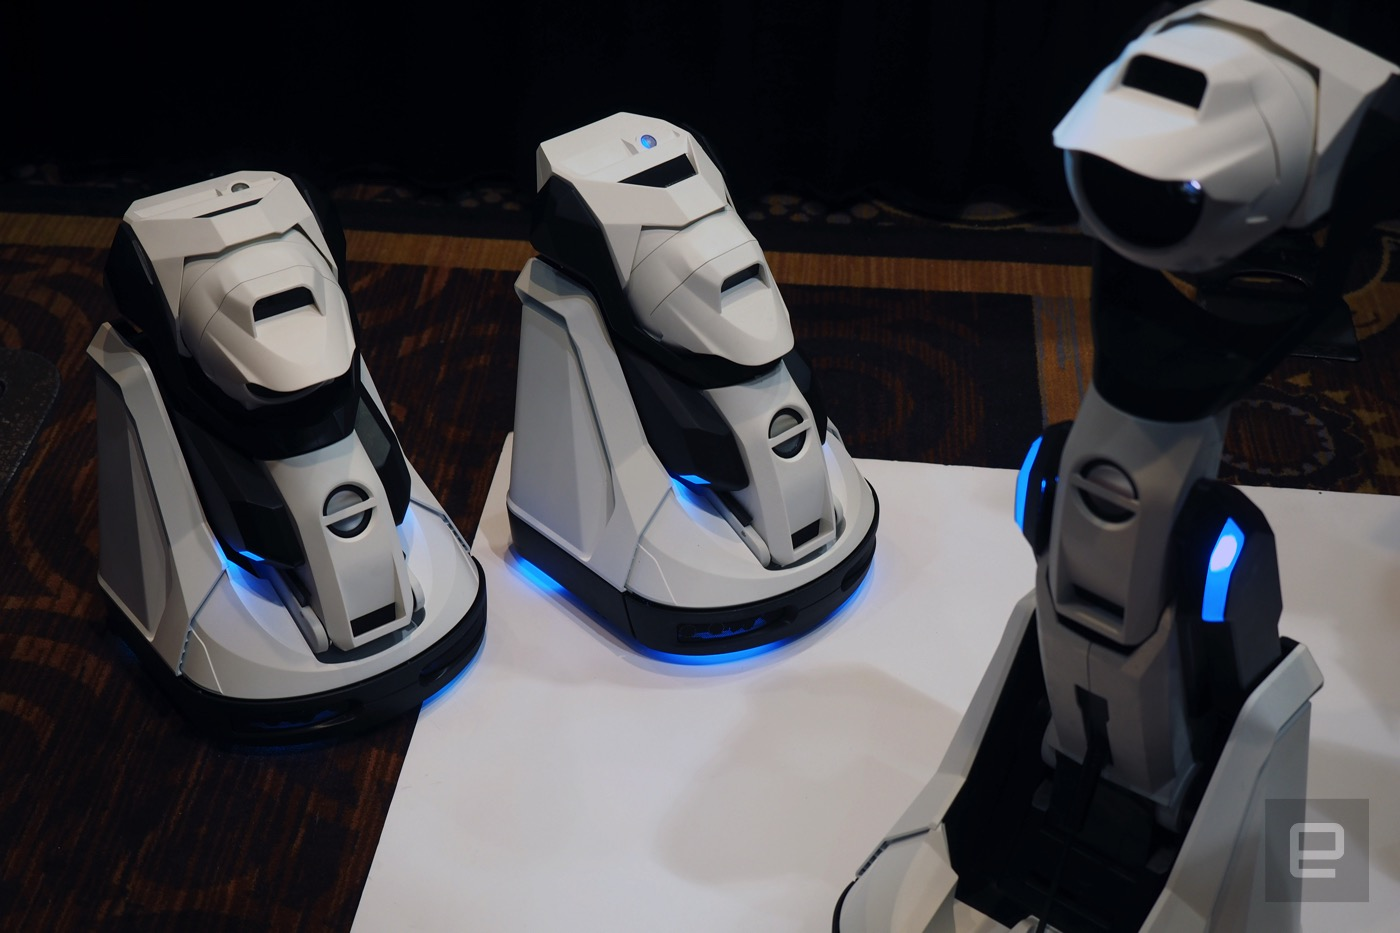 Here's a transforming robotic video projector